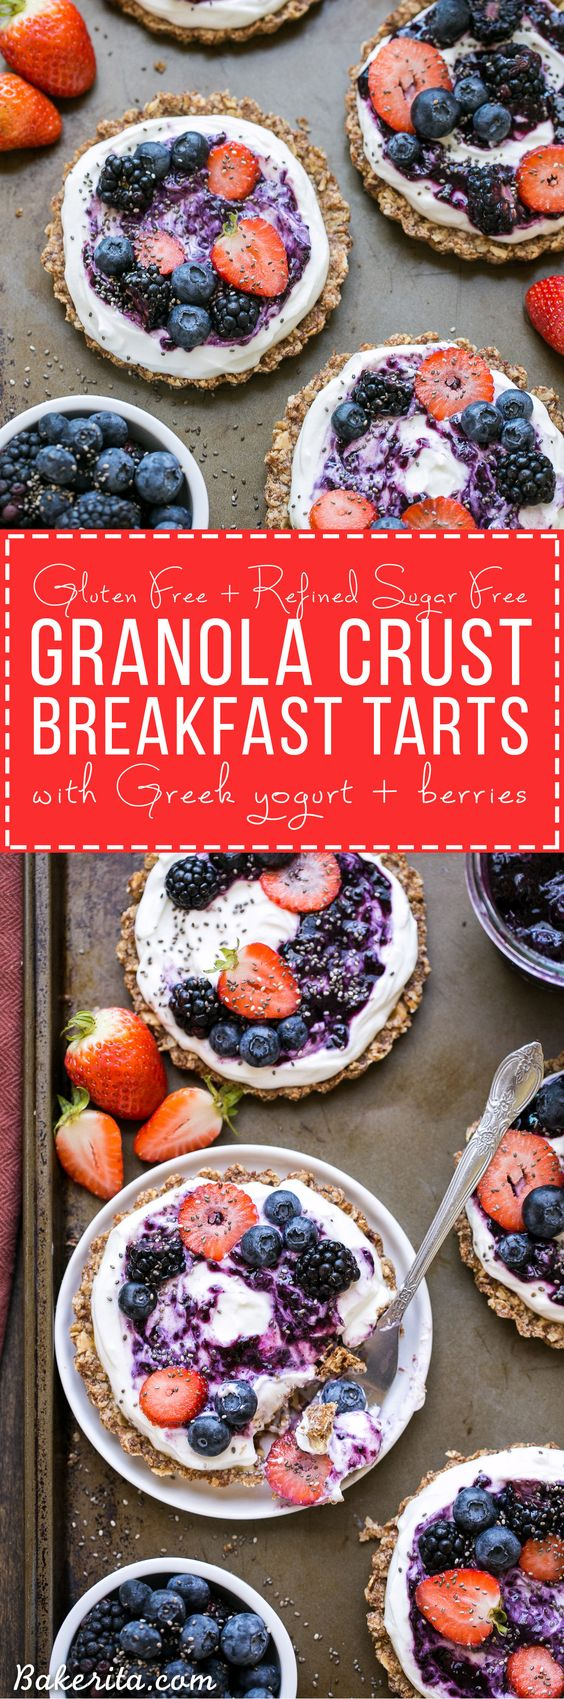 These Granola Crust Breakfast Tarts are topped with Greek yogurt and fresh berries for a fun and filling breakfast! This gluten-free and refined sugar-free twist on a classic parfait looks beautiful and tastes even better.